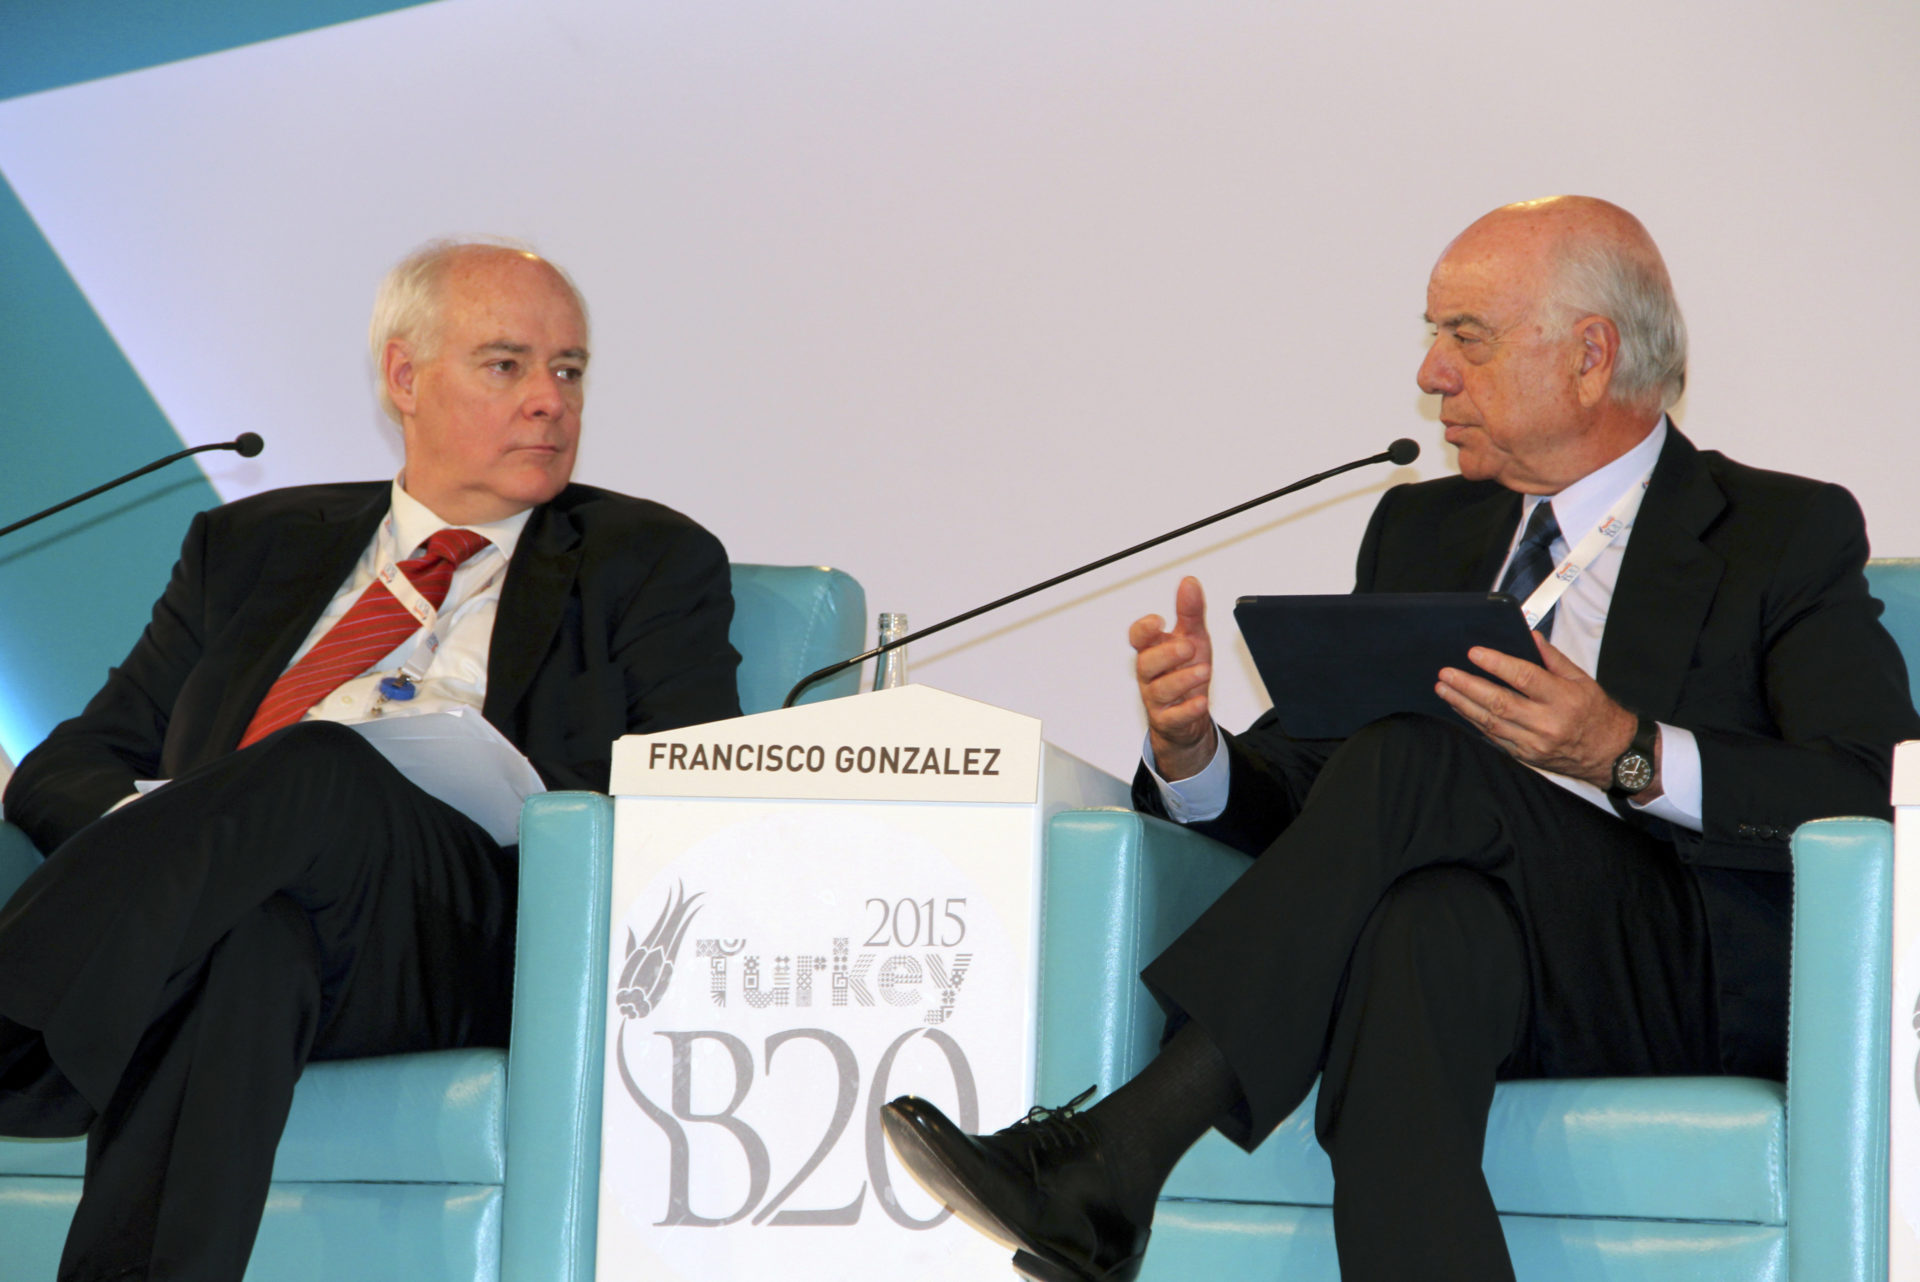 Picture of Francisco González who participated in the joint meeting of the B20